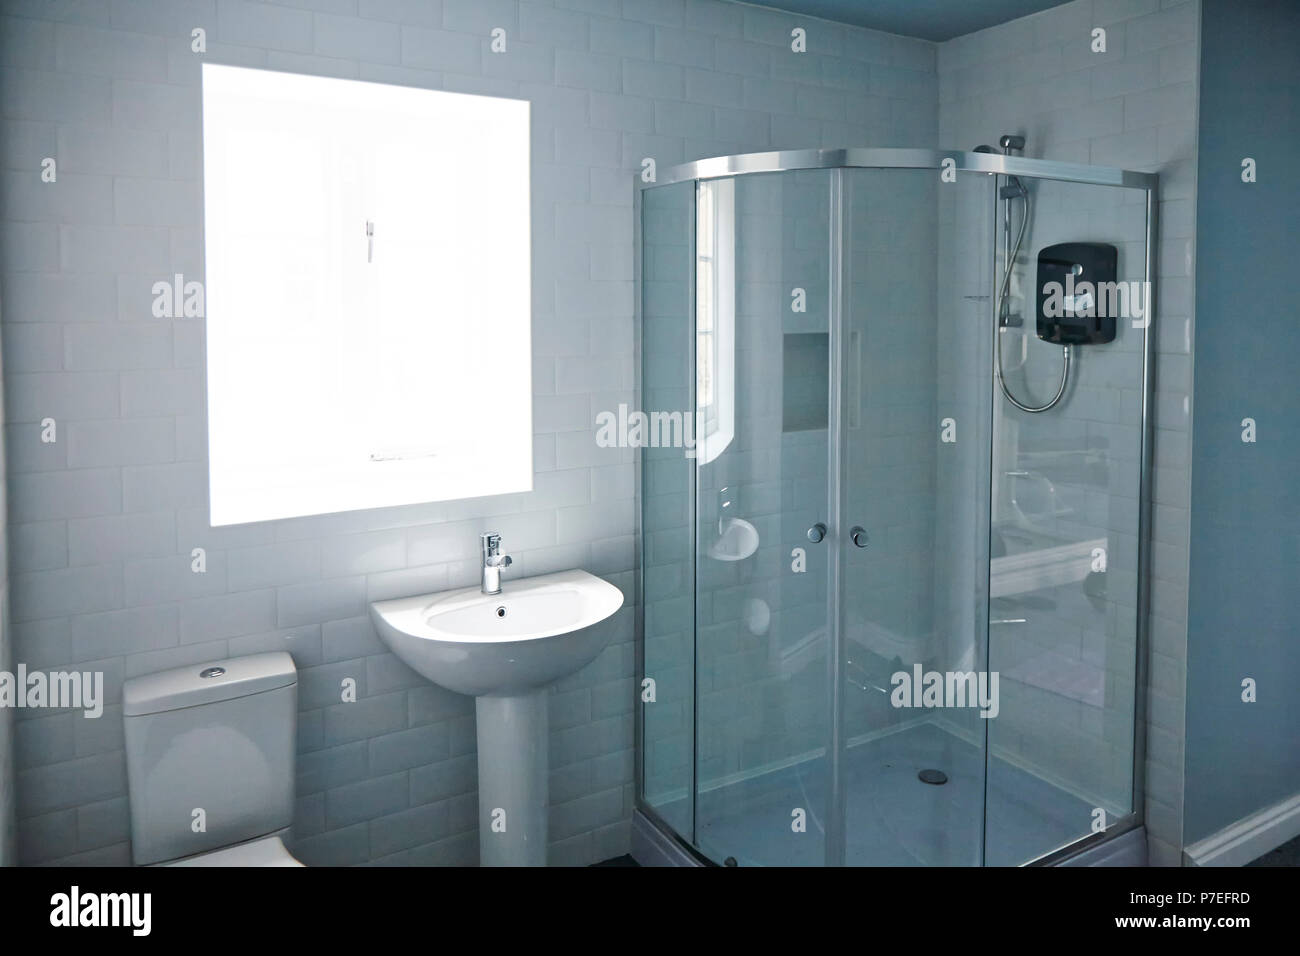 Private home gym shower stock photos & private home gym shower stock